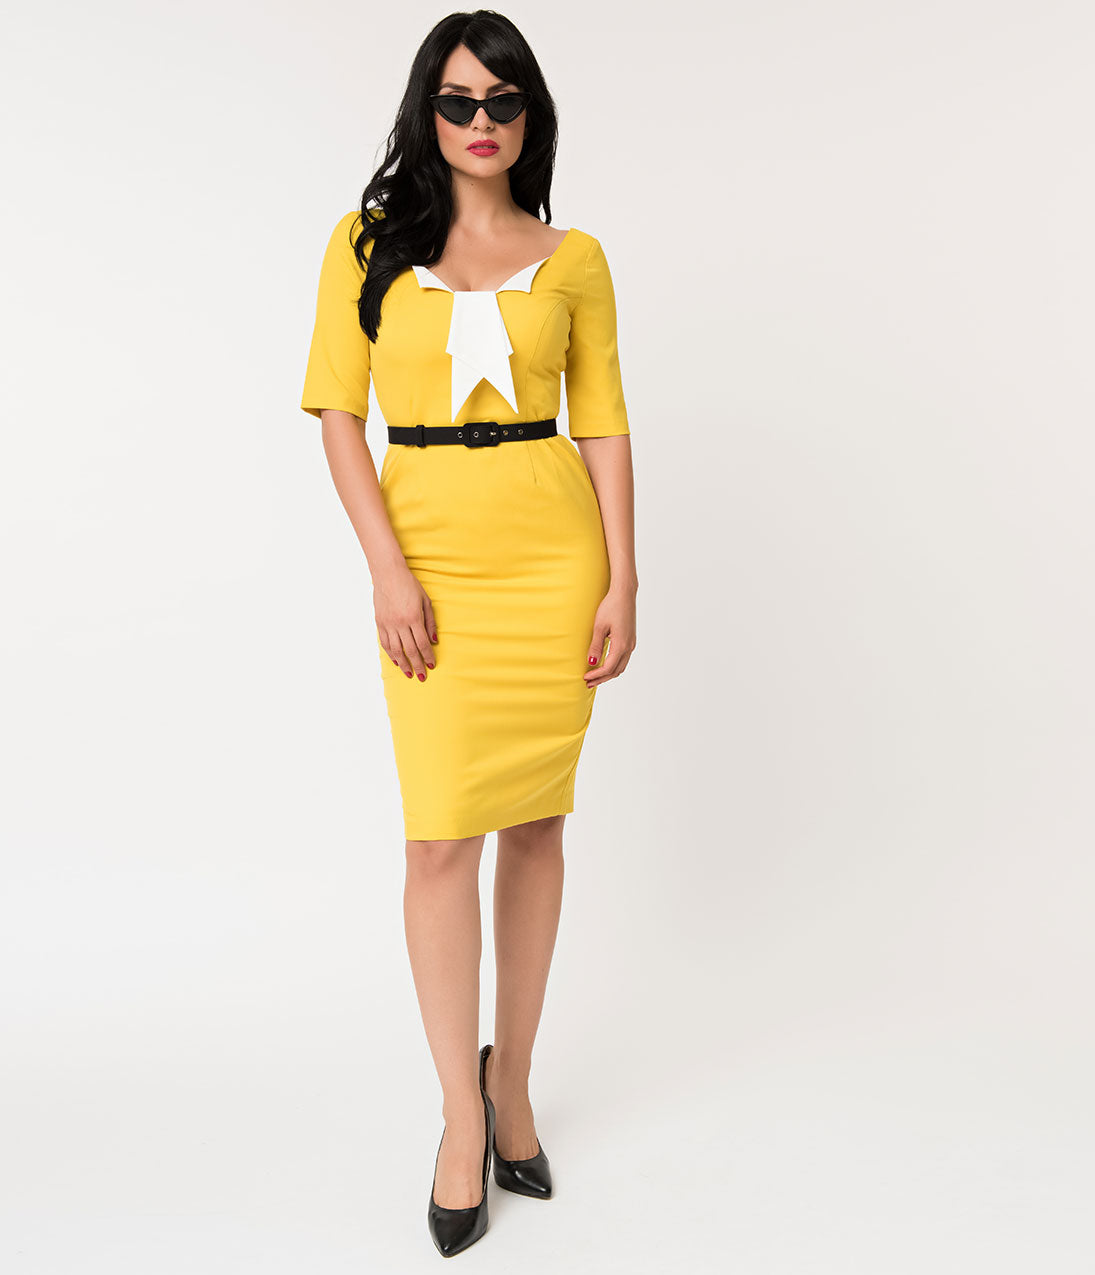 1960s Dresses | 60s Dresses Mod, Mini, Jakie O, Hippie Glamour Bunny Yellow Jacky Pencil Dress $124.00 AT vintagedancer.com